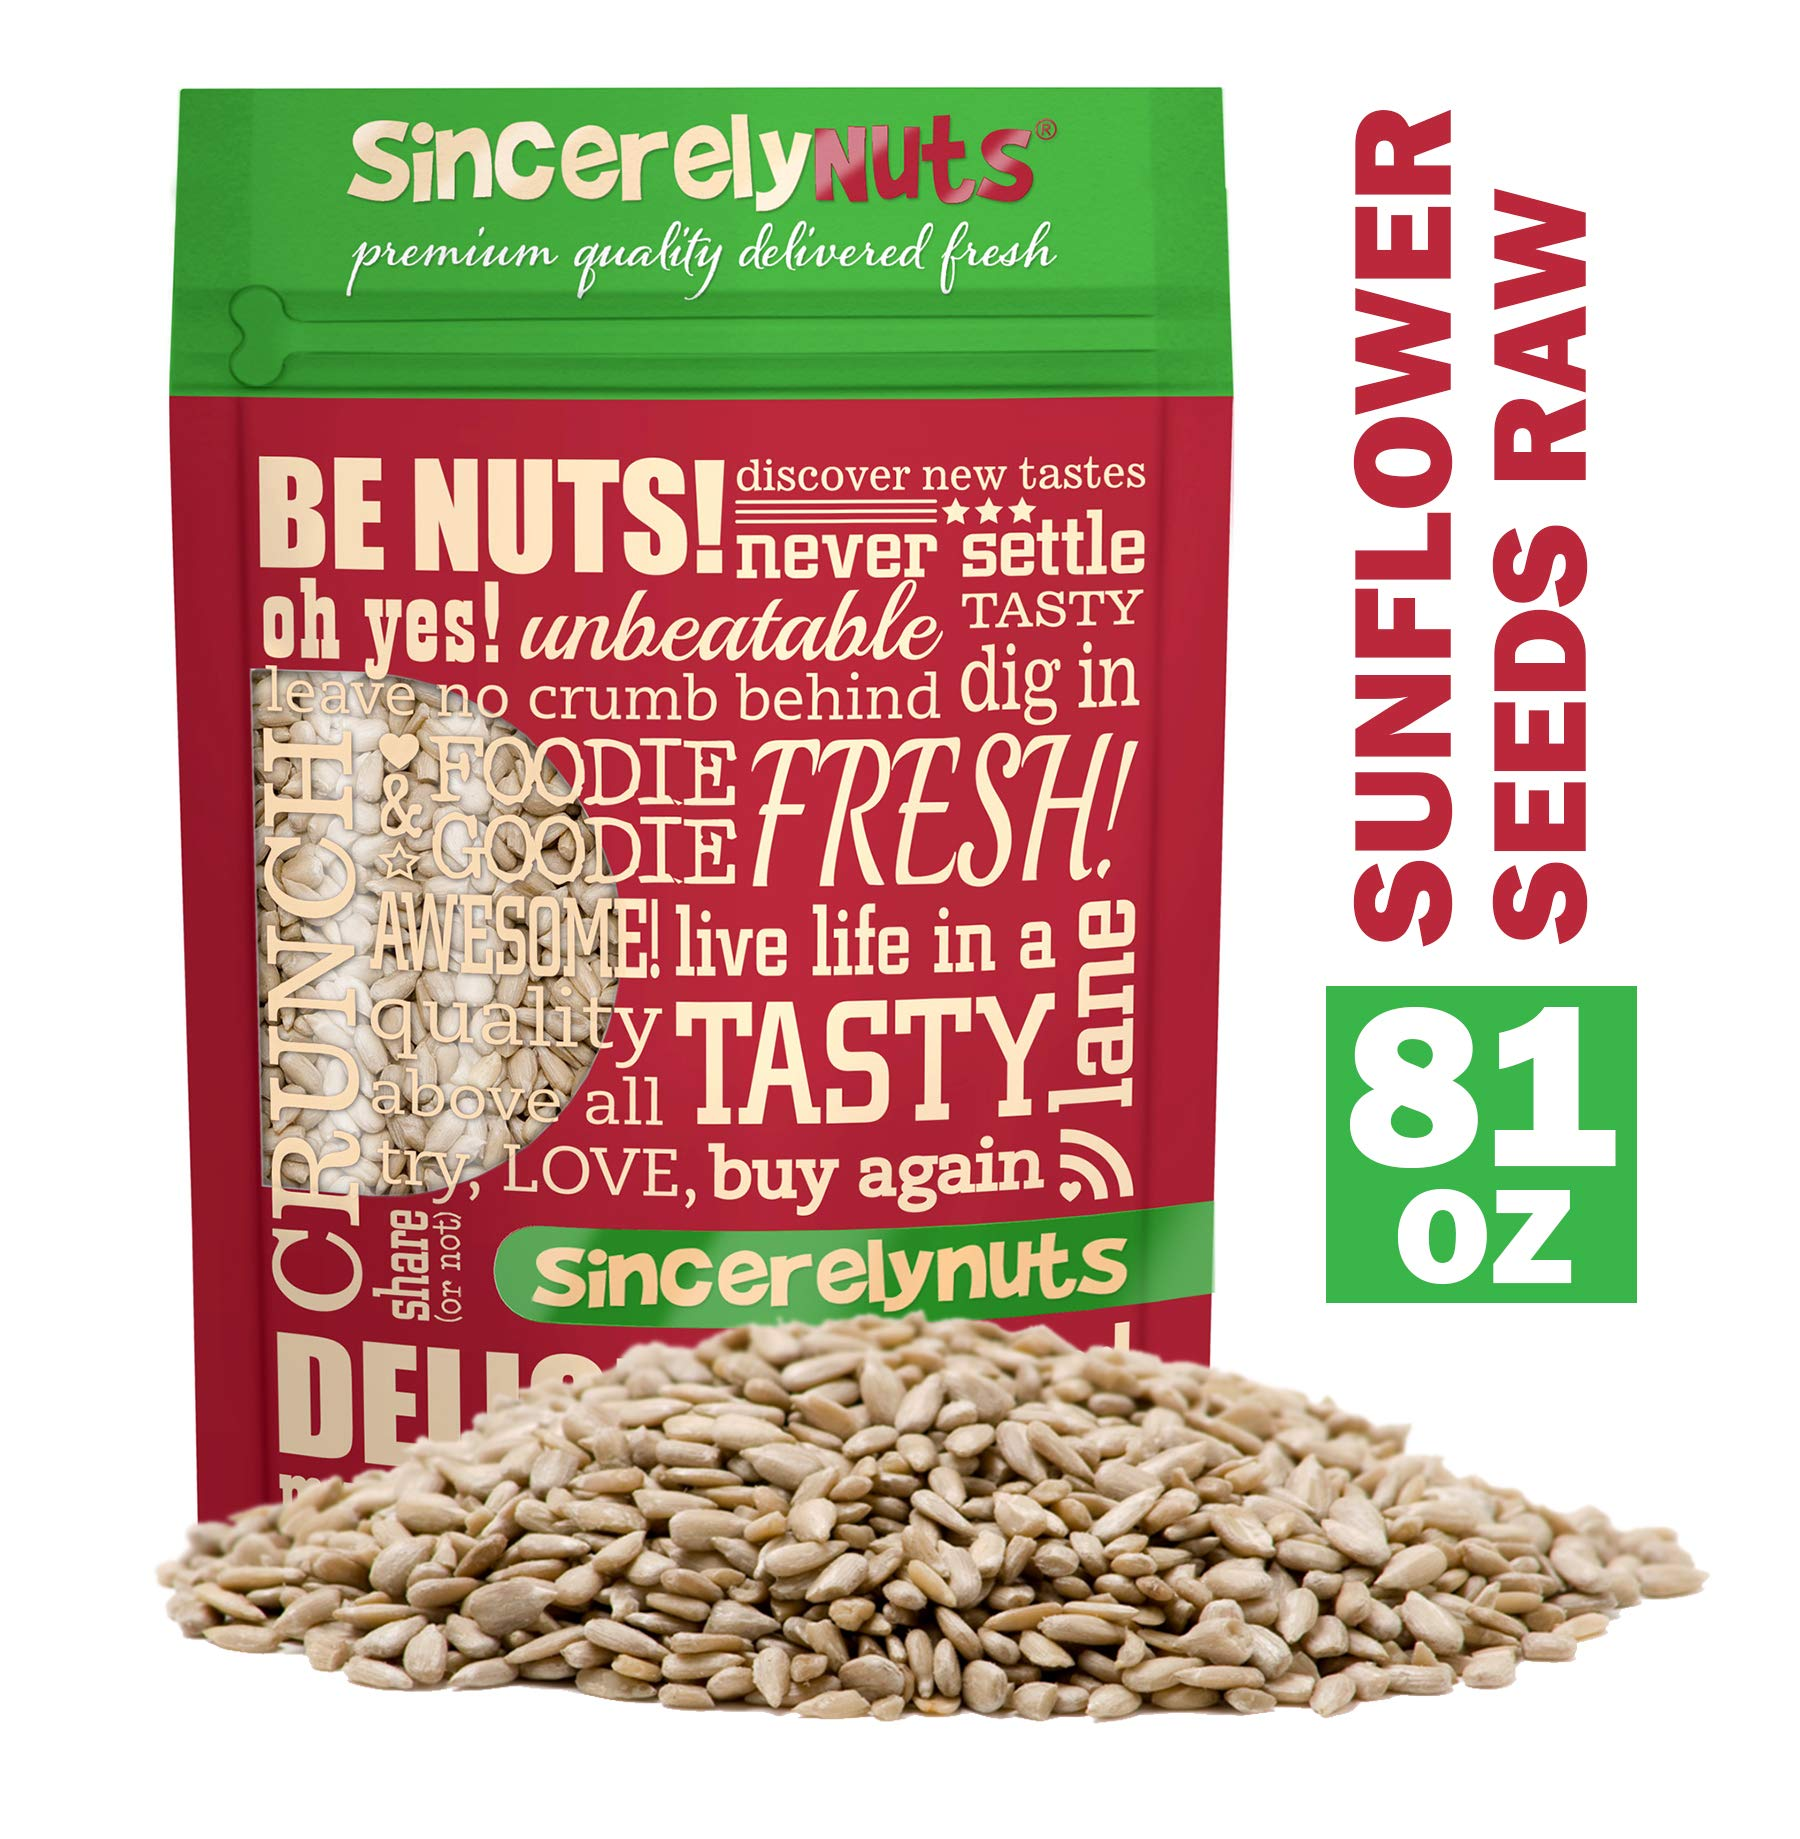 Sincerely Nuts Sunflower Seed Kernels Raw (No Shell) (5lb bag) | Delicious Antioxidant Rich Snack | Source of Protein, Fiber, Essential Vitamins & Minerals | Vegan and Gluten Free by Sincerely Nuts